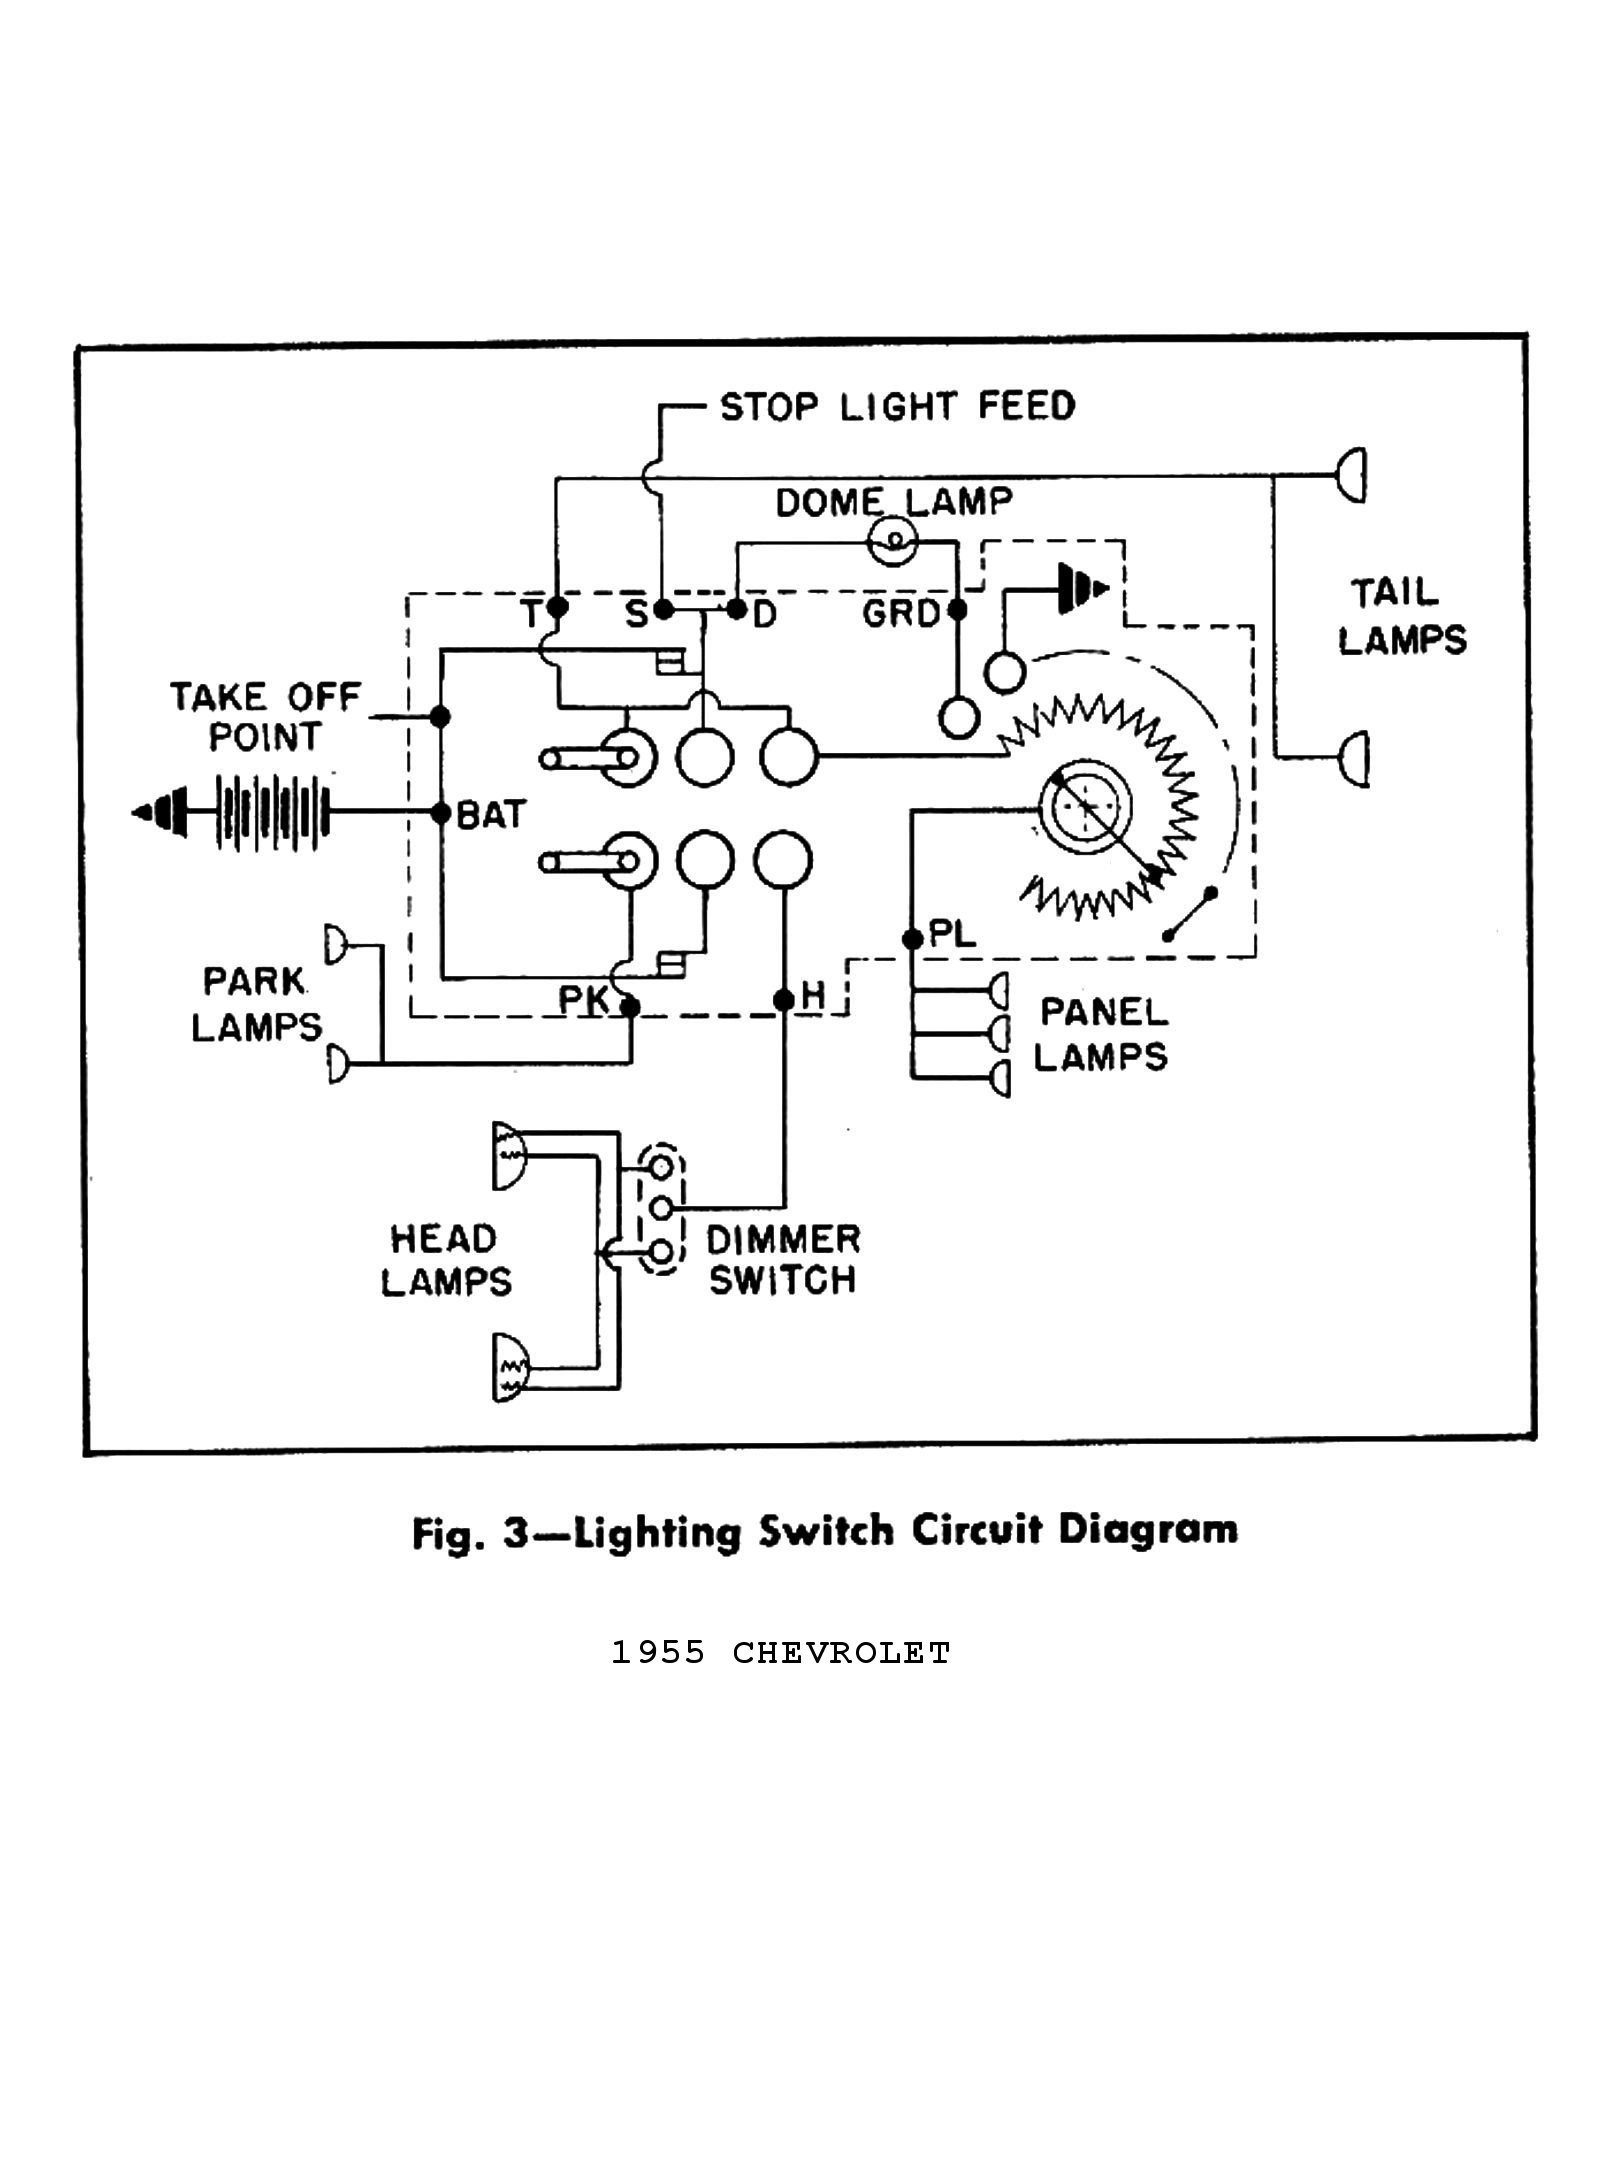 2910 Ford Tractor Wiring Diagram | Wiring Library - 8N Ford Tractor Wiring Diagram 12 Volt